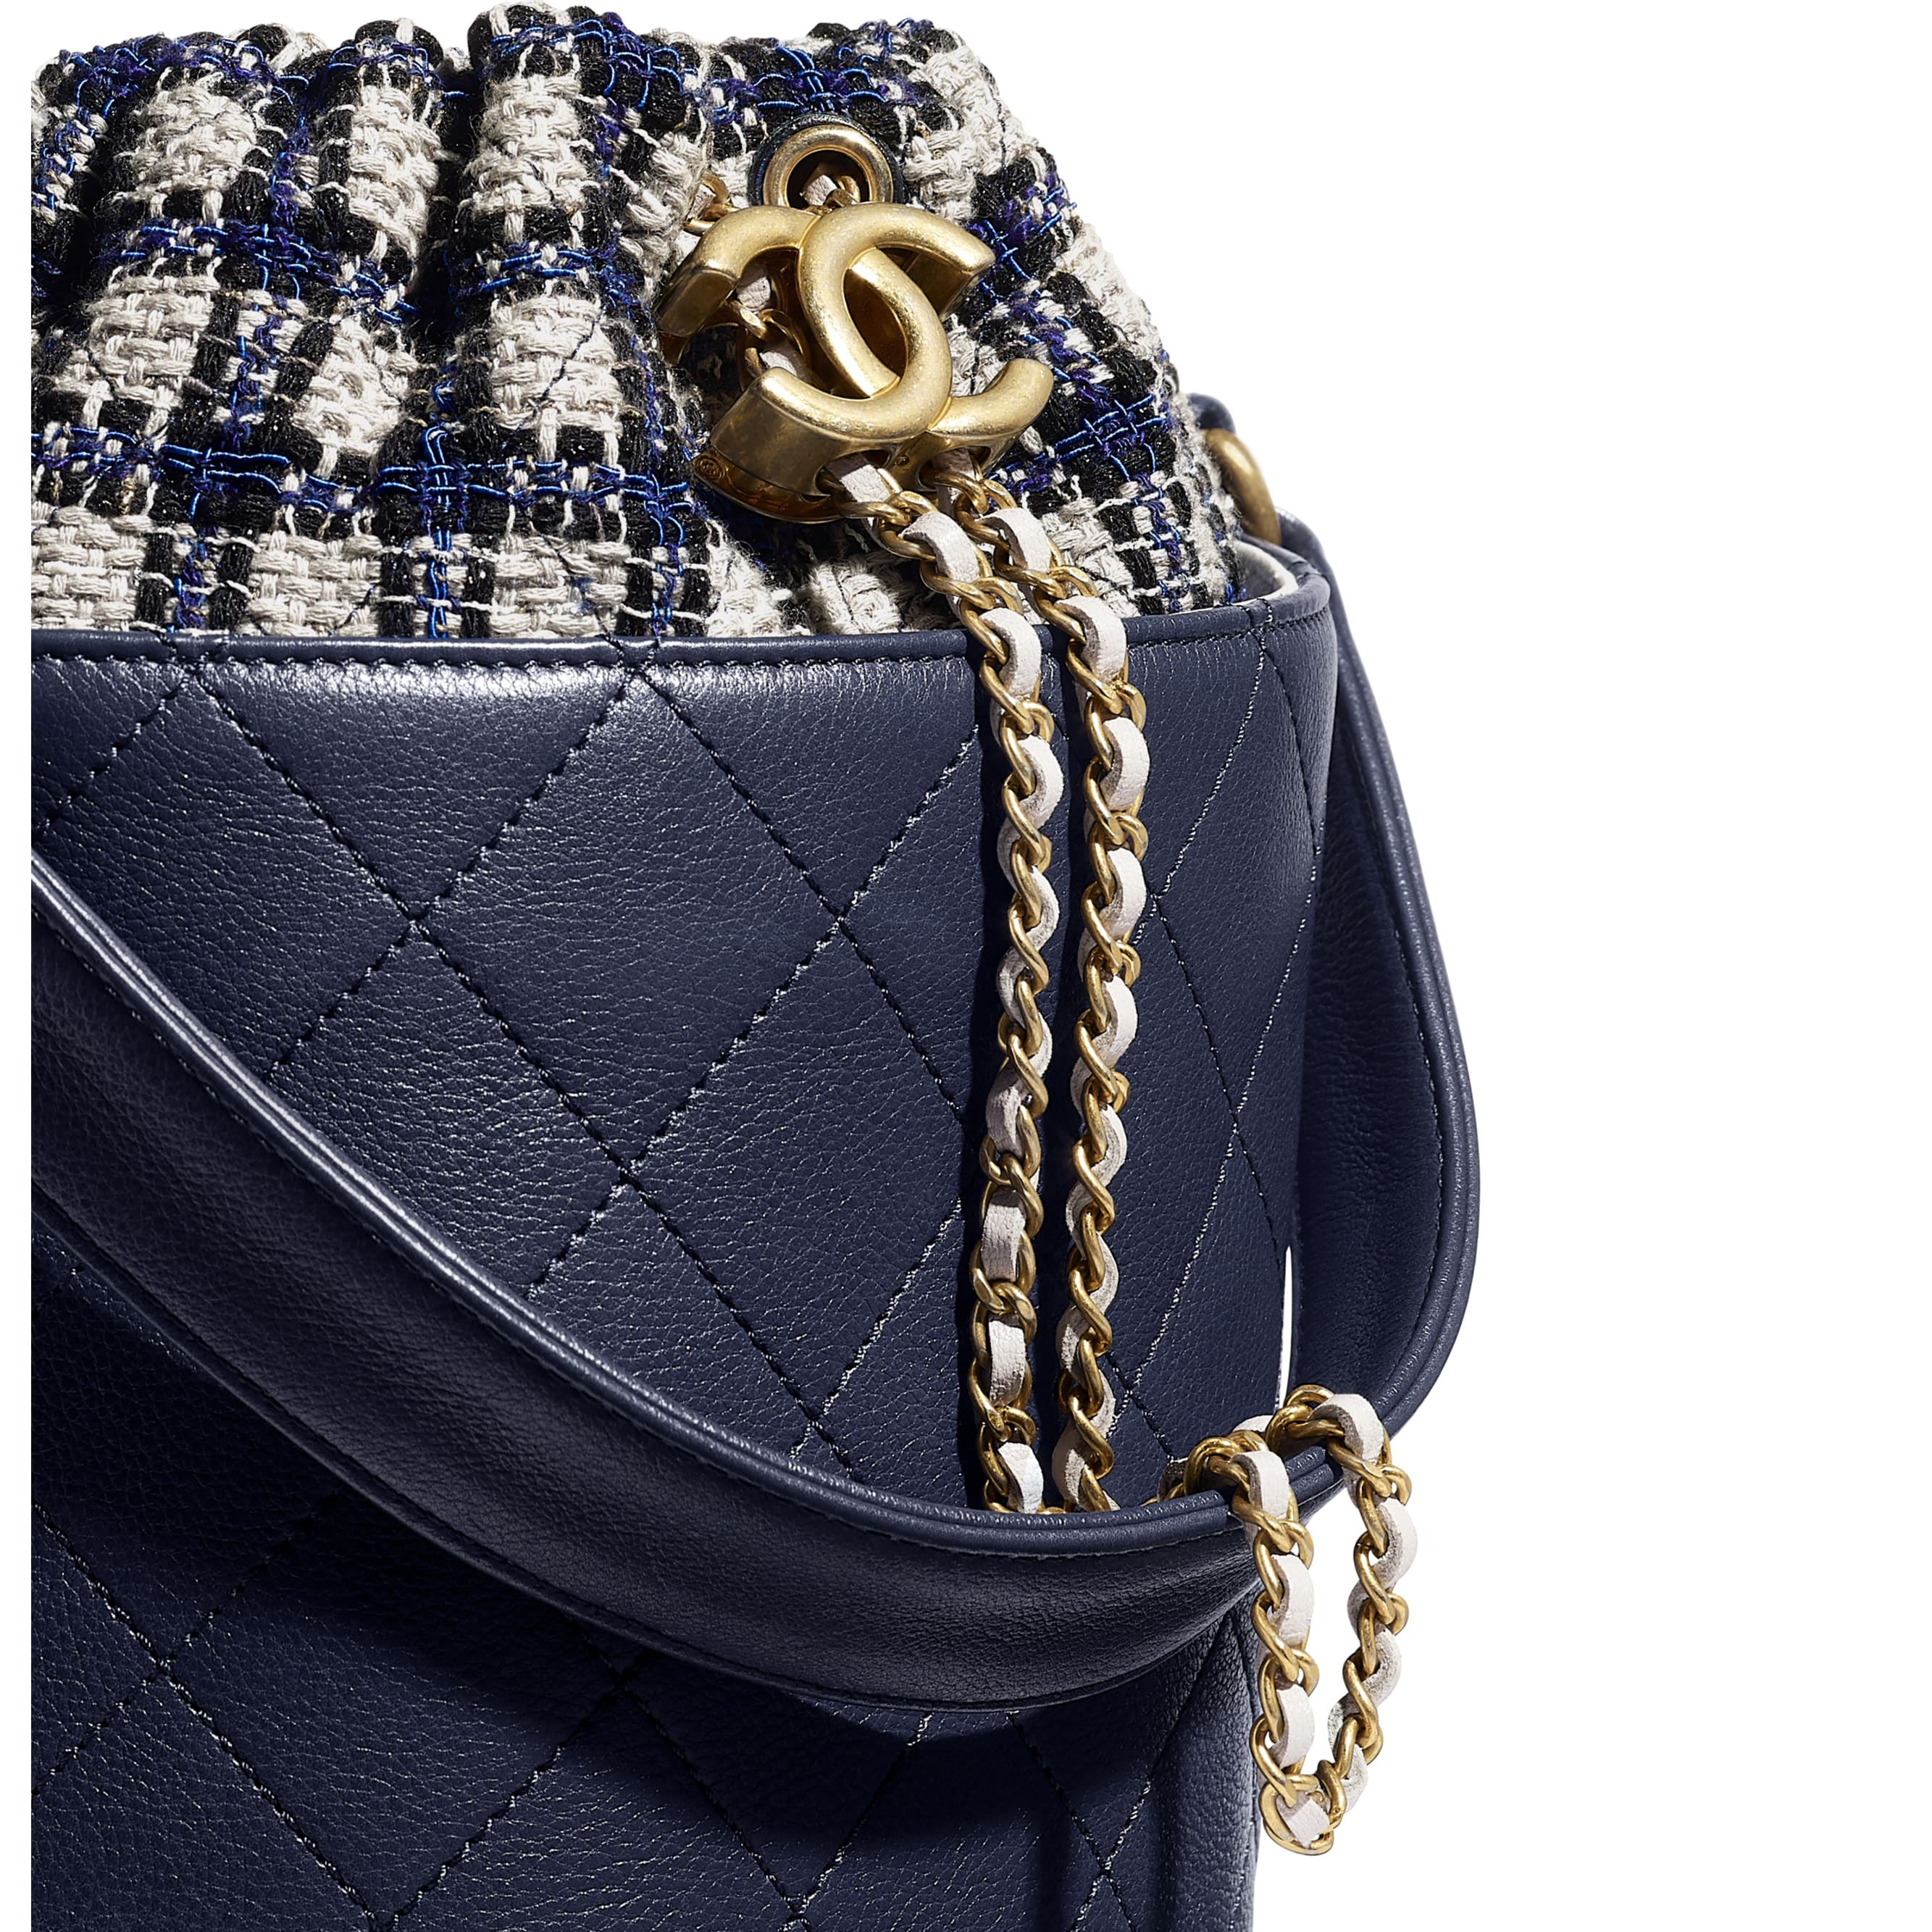 Drawstring Bag - Navy Blue, Black & Grey - Calfskin, Tweed & Gold-Tone Metal - CHANEL - Extra view - see standard sized version